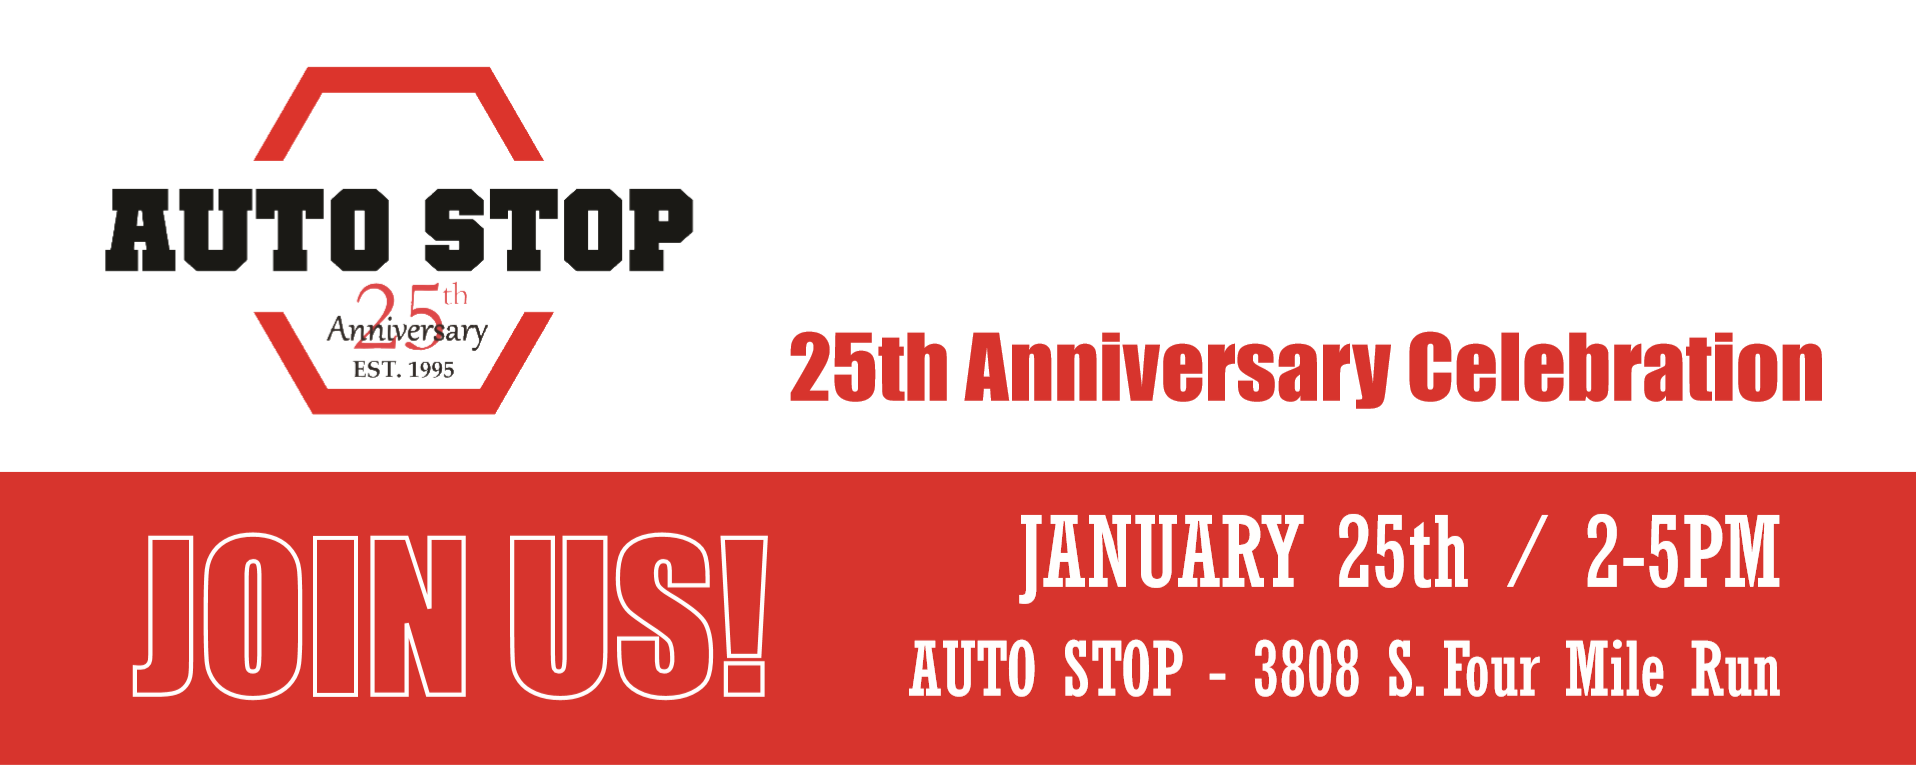 Auto Stop celebrating 25 years in business this January